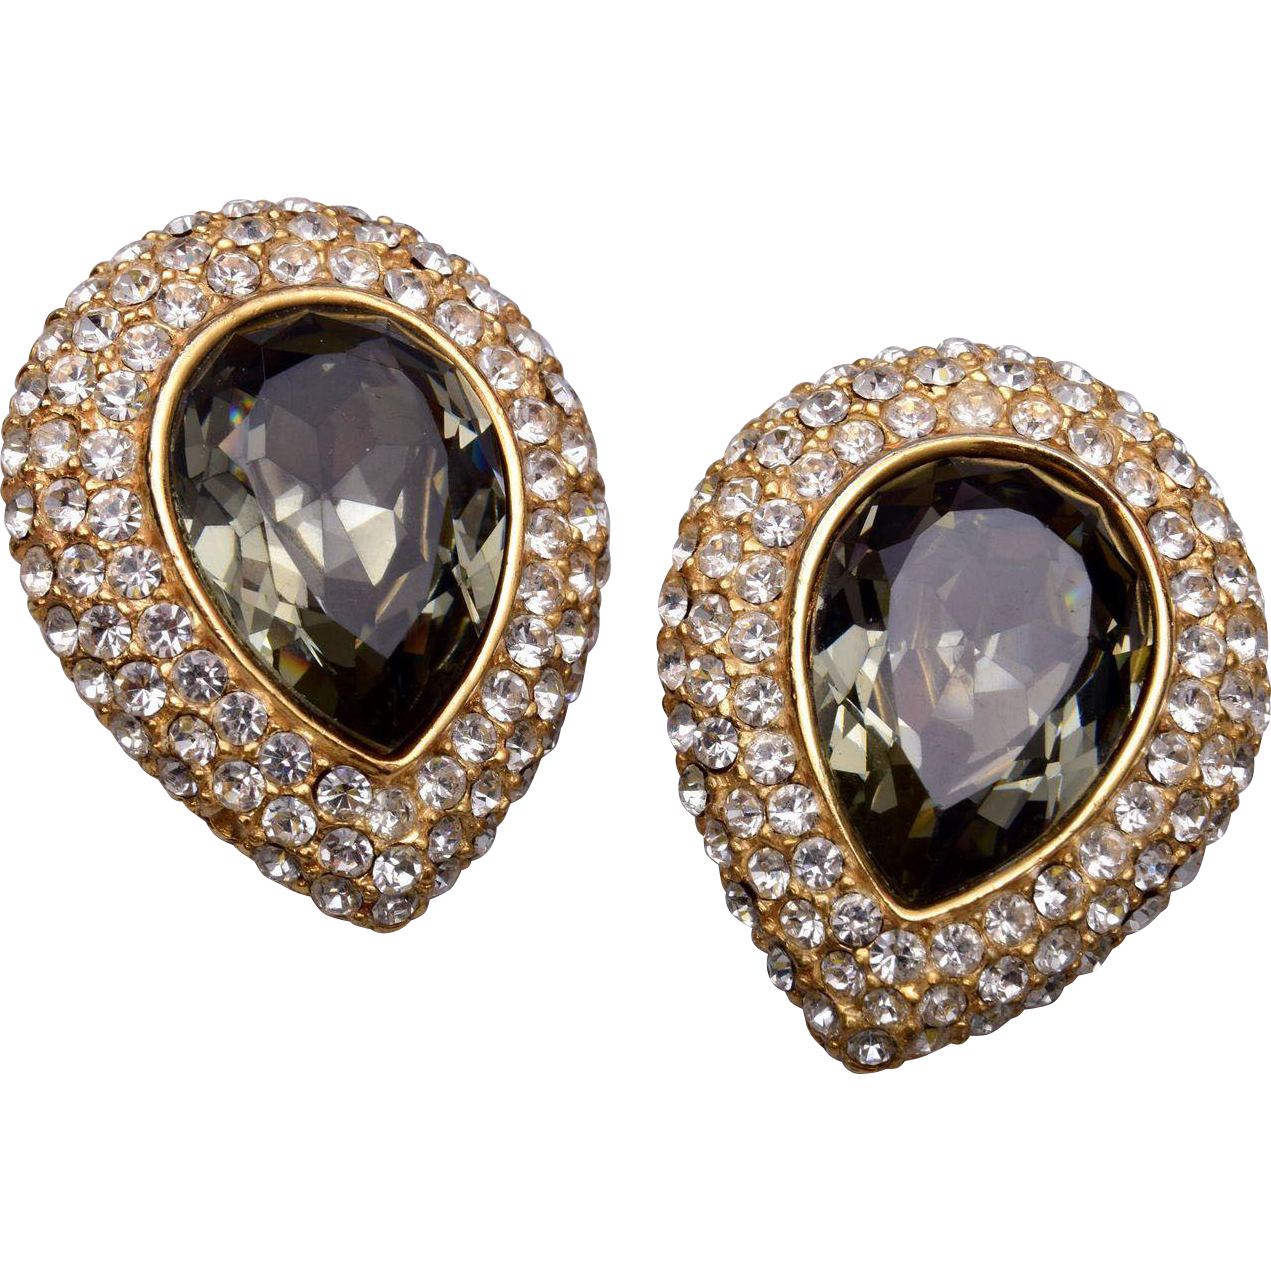 Ciner Tear Drop Rhinestone Earrings